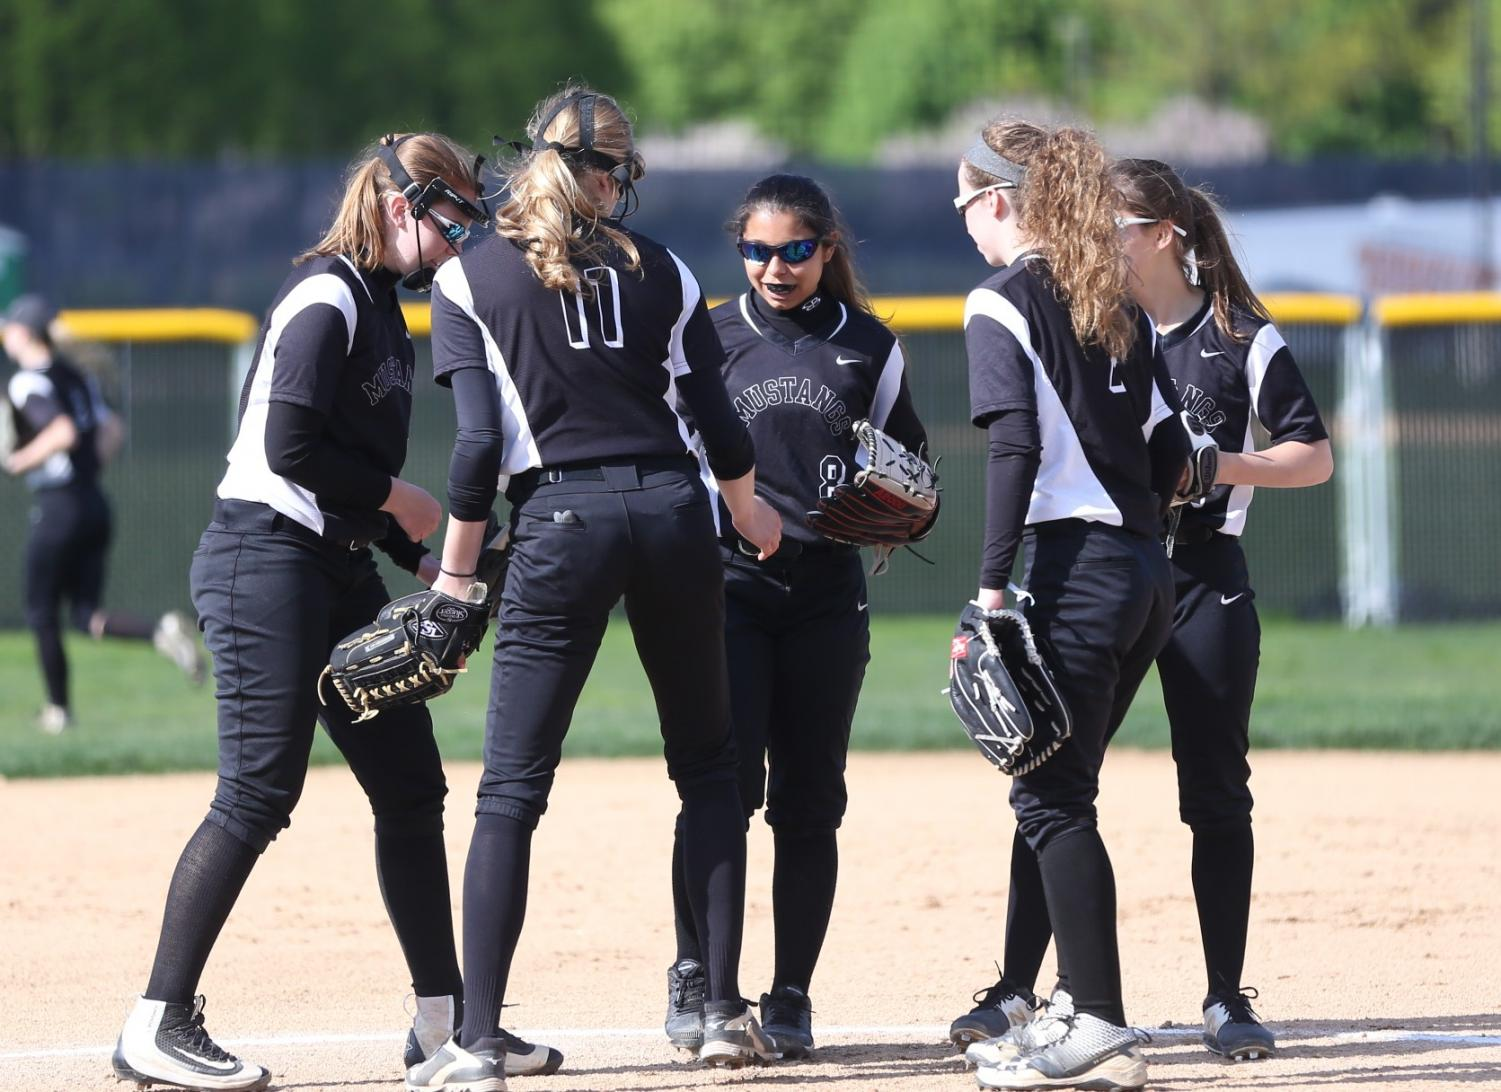 The girls' softball team huddle together during the second inning on May 3rd against Naperville North.